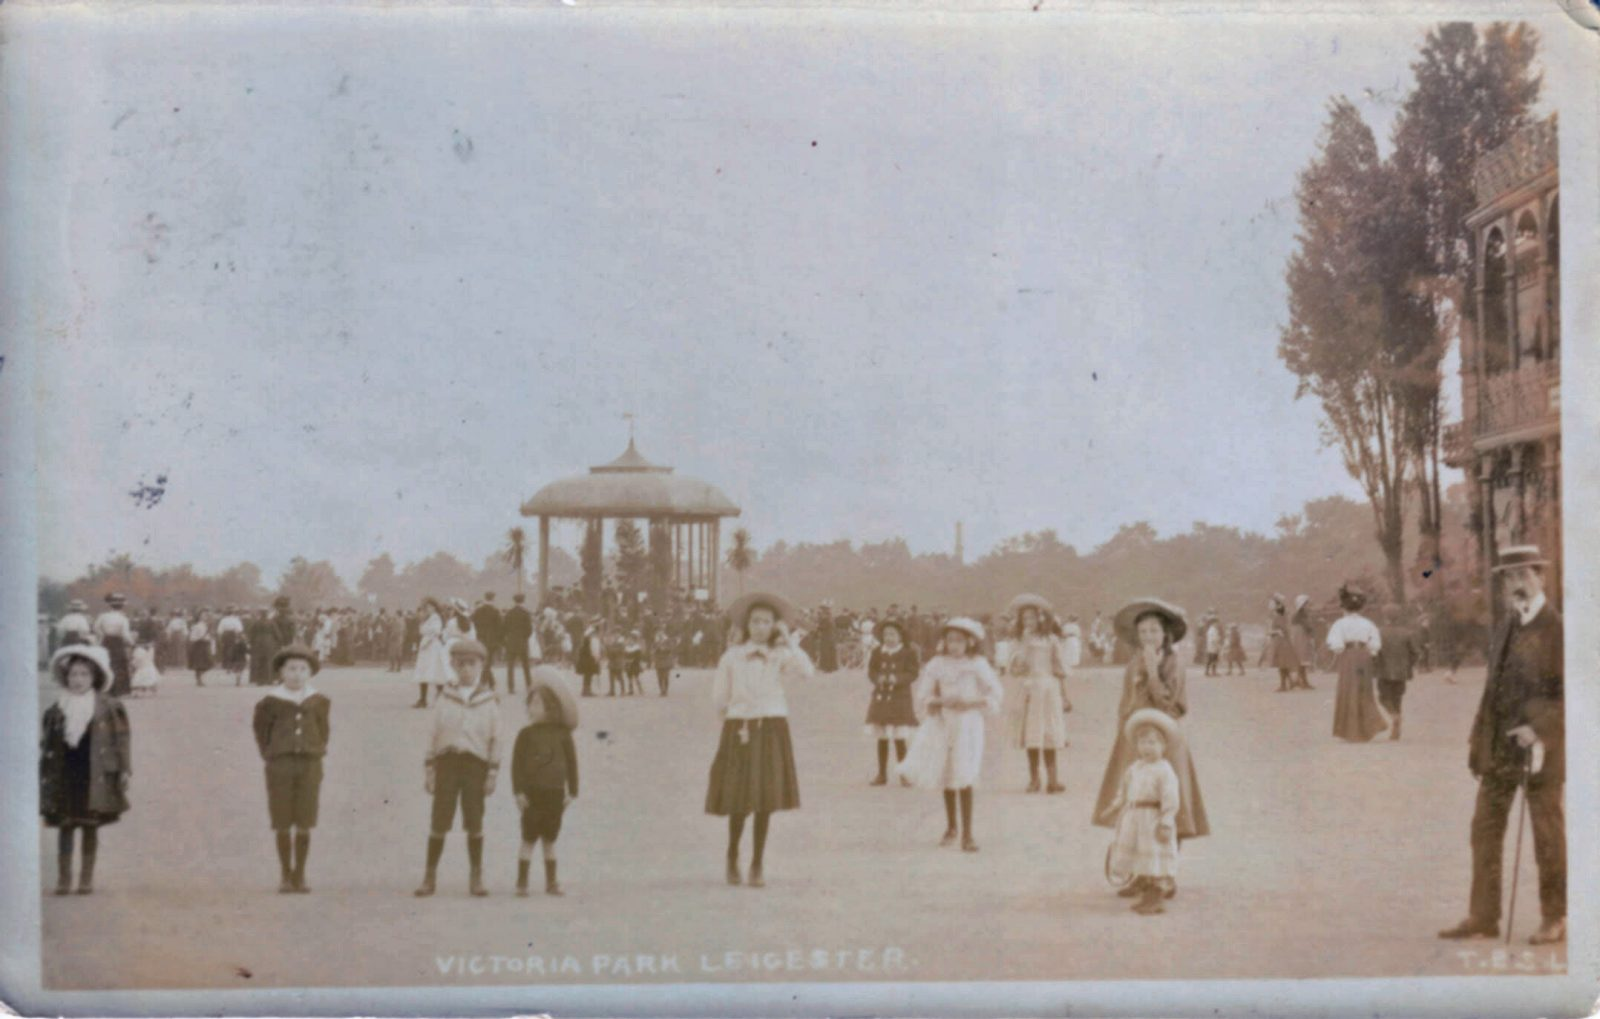 Victoria Park, Leicester. 1901-1920: Children playing with the bandstand in the background (File:1430)